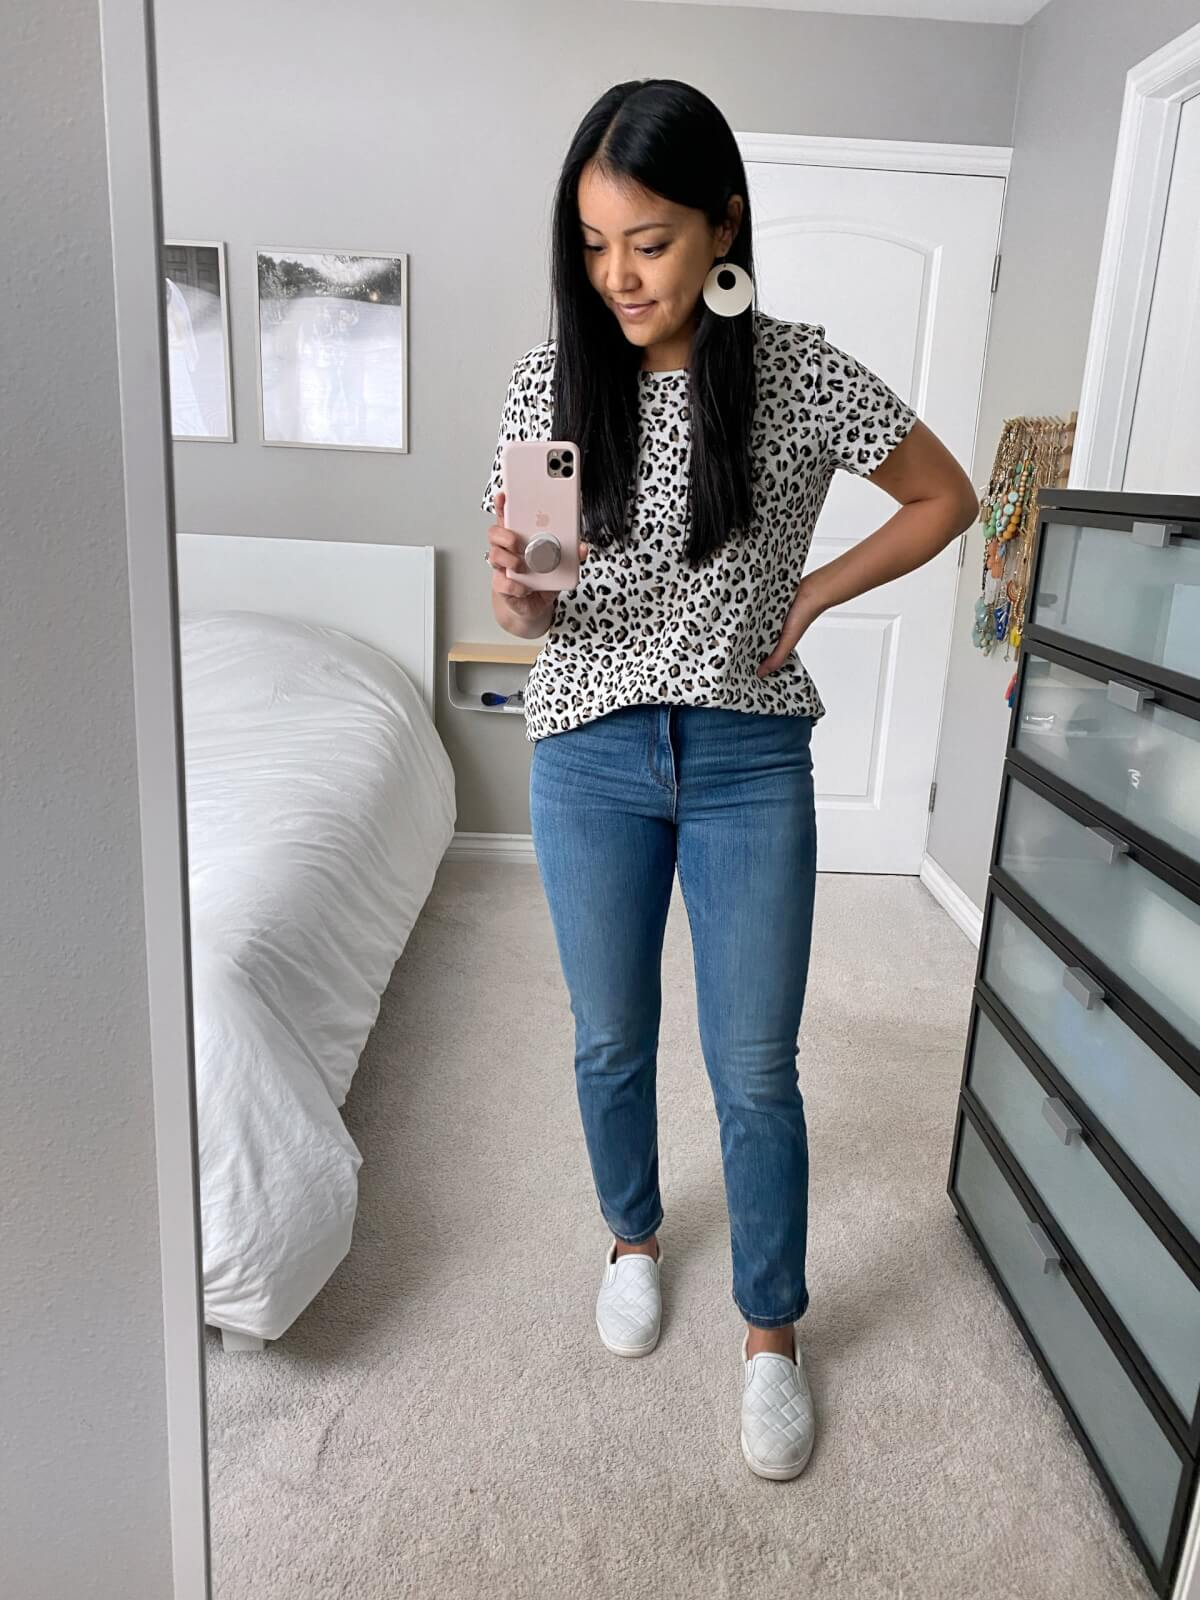 Amazon Review: Goodthreads High Rise Straight Leg Jeans + Leopard Tee + White Earrings + White Slip-On Sneakers